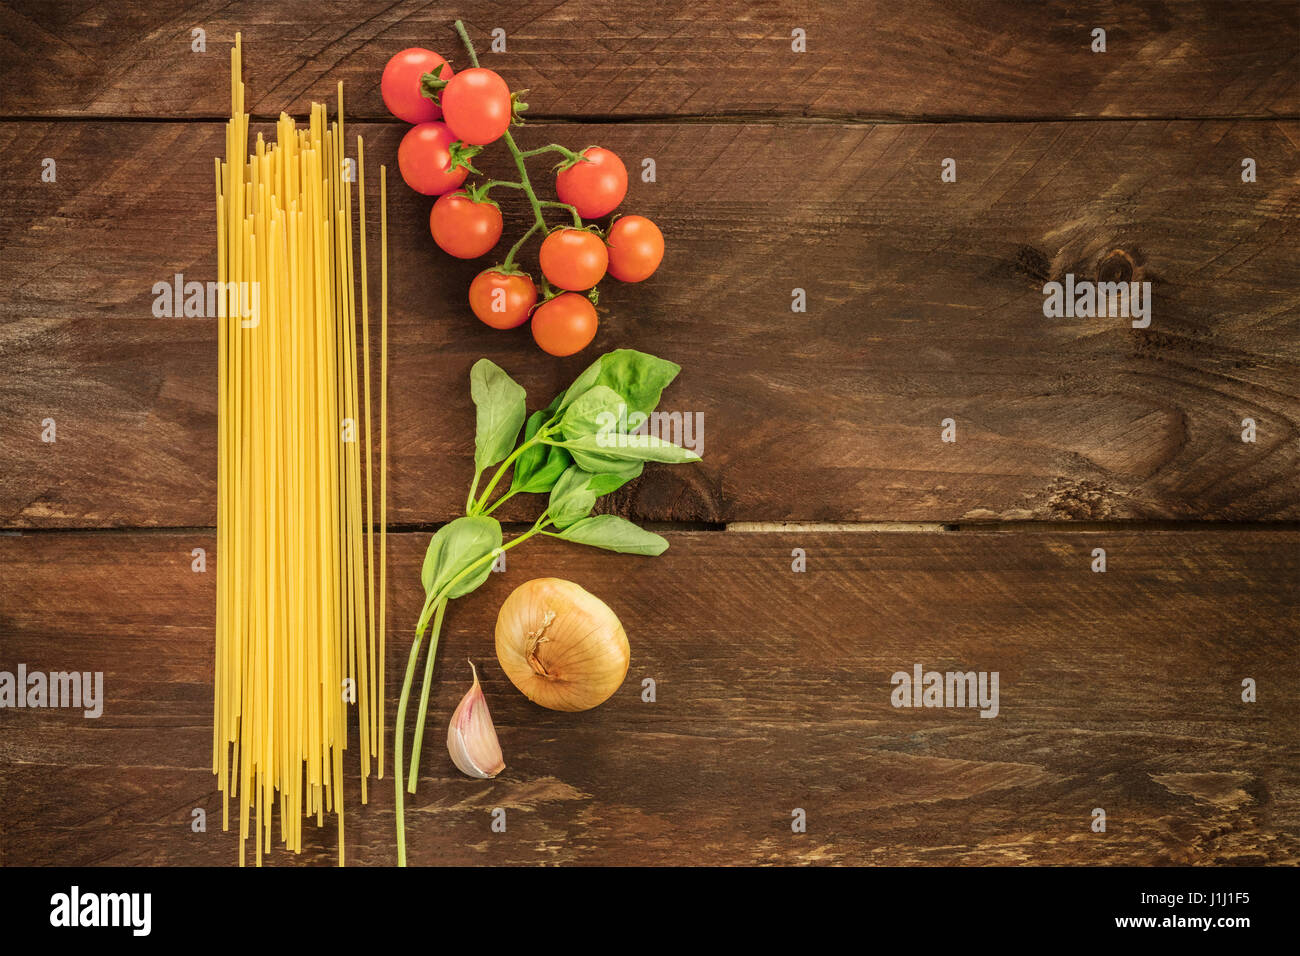 Basic pasta ingredients, spaghetti and vegetables - Stock Image